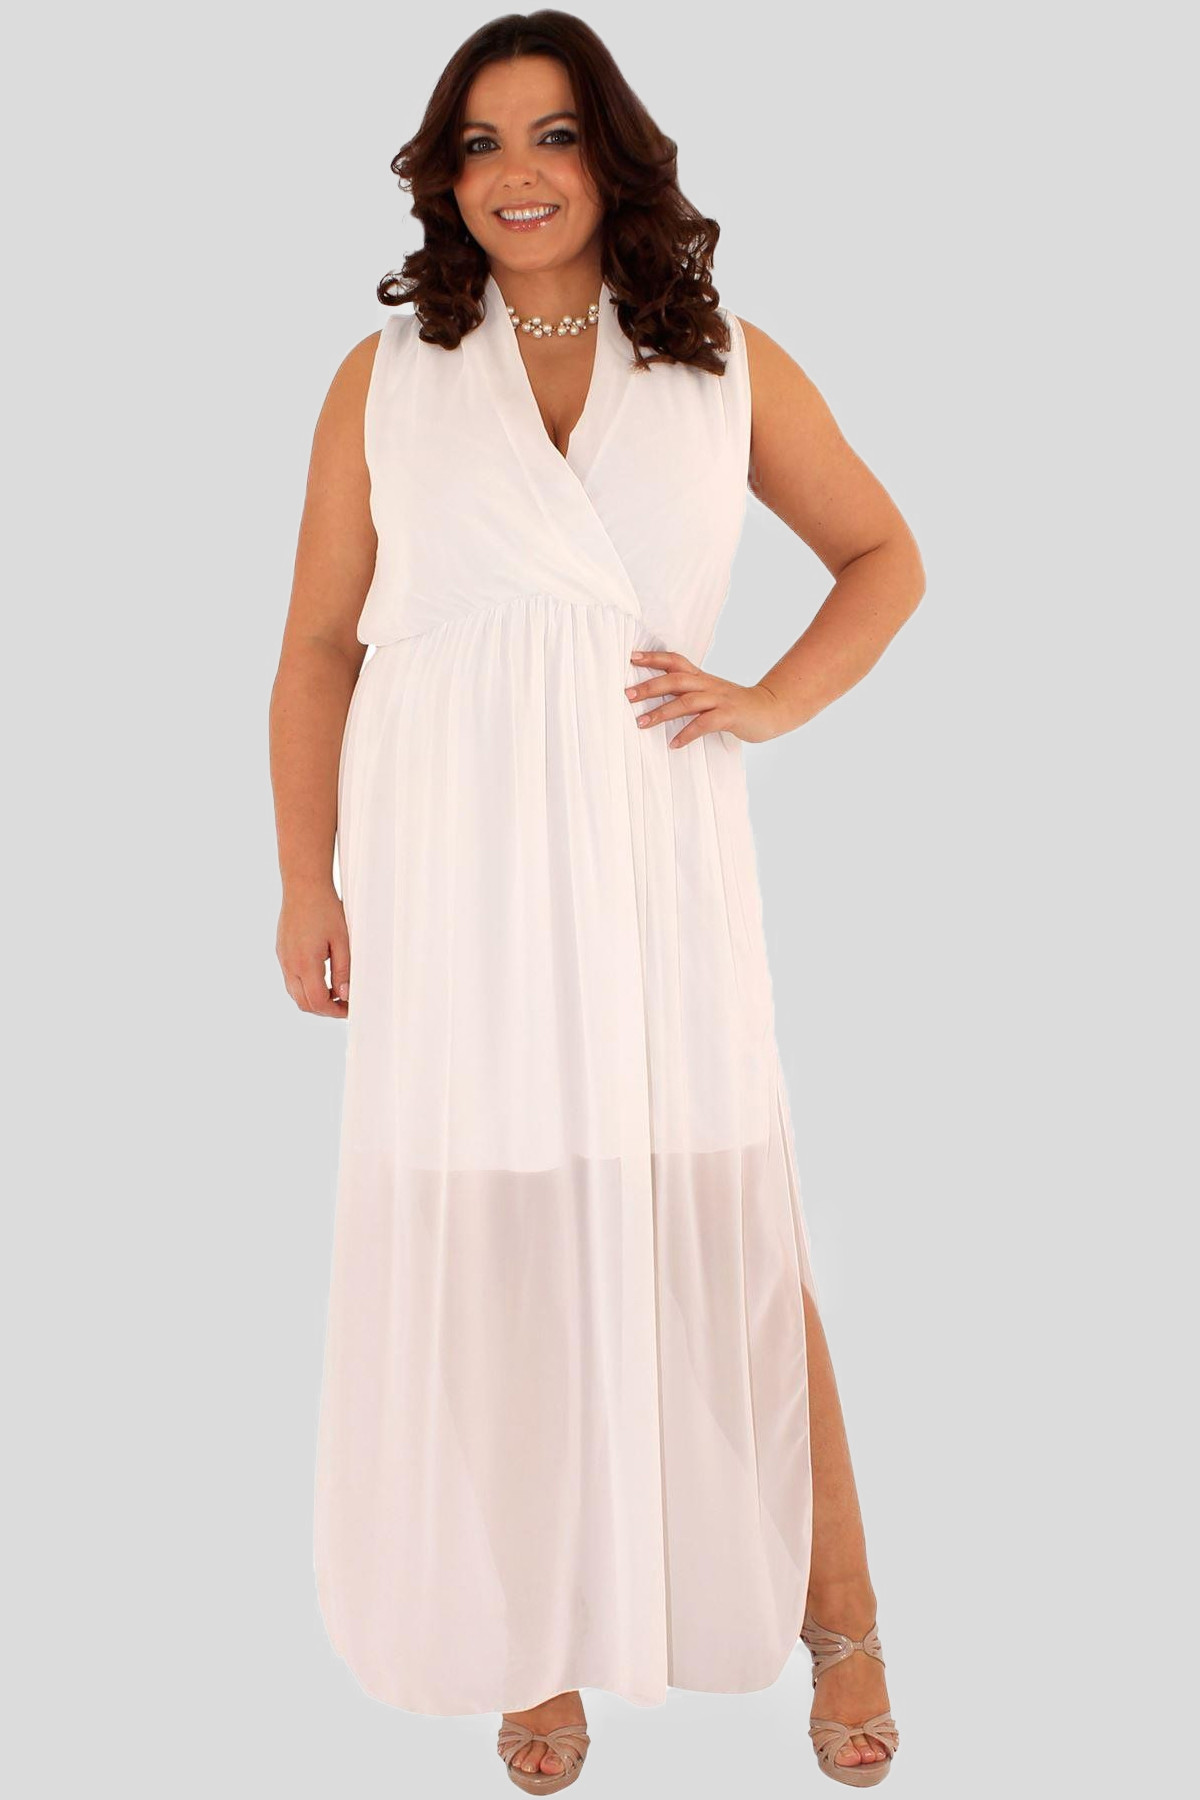 7112f14a579a Molly Plus Size Wrap Front Chiffon Maxi Dress 16-26 - Plus Sizes